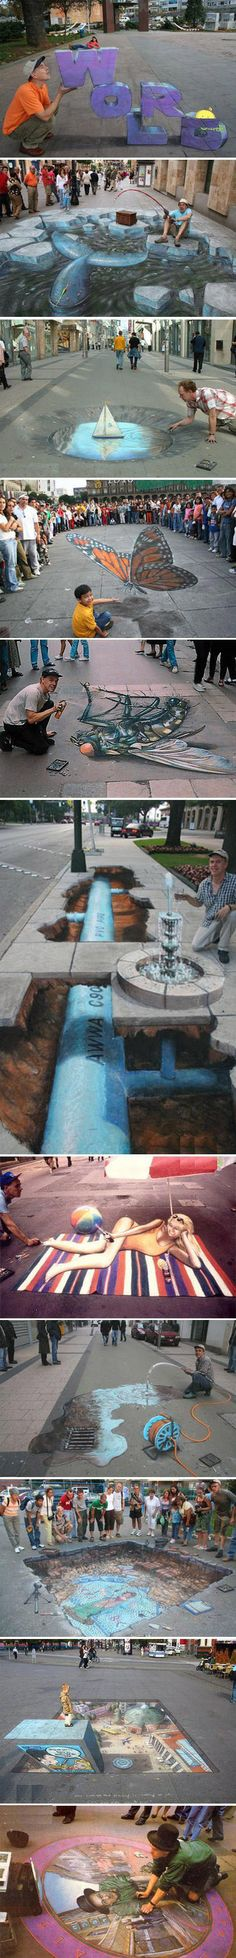 10 excellent 3D street chalk artworks